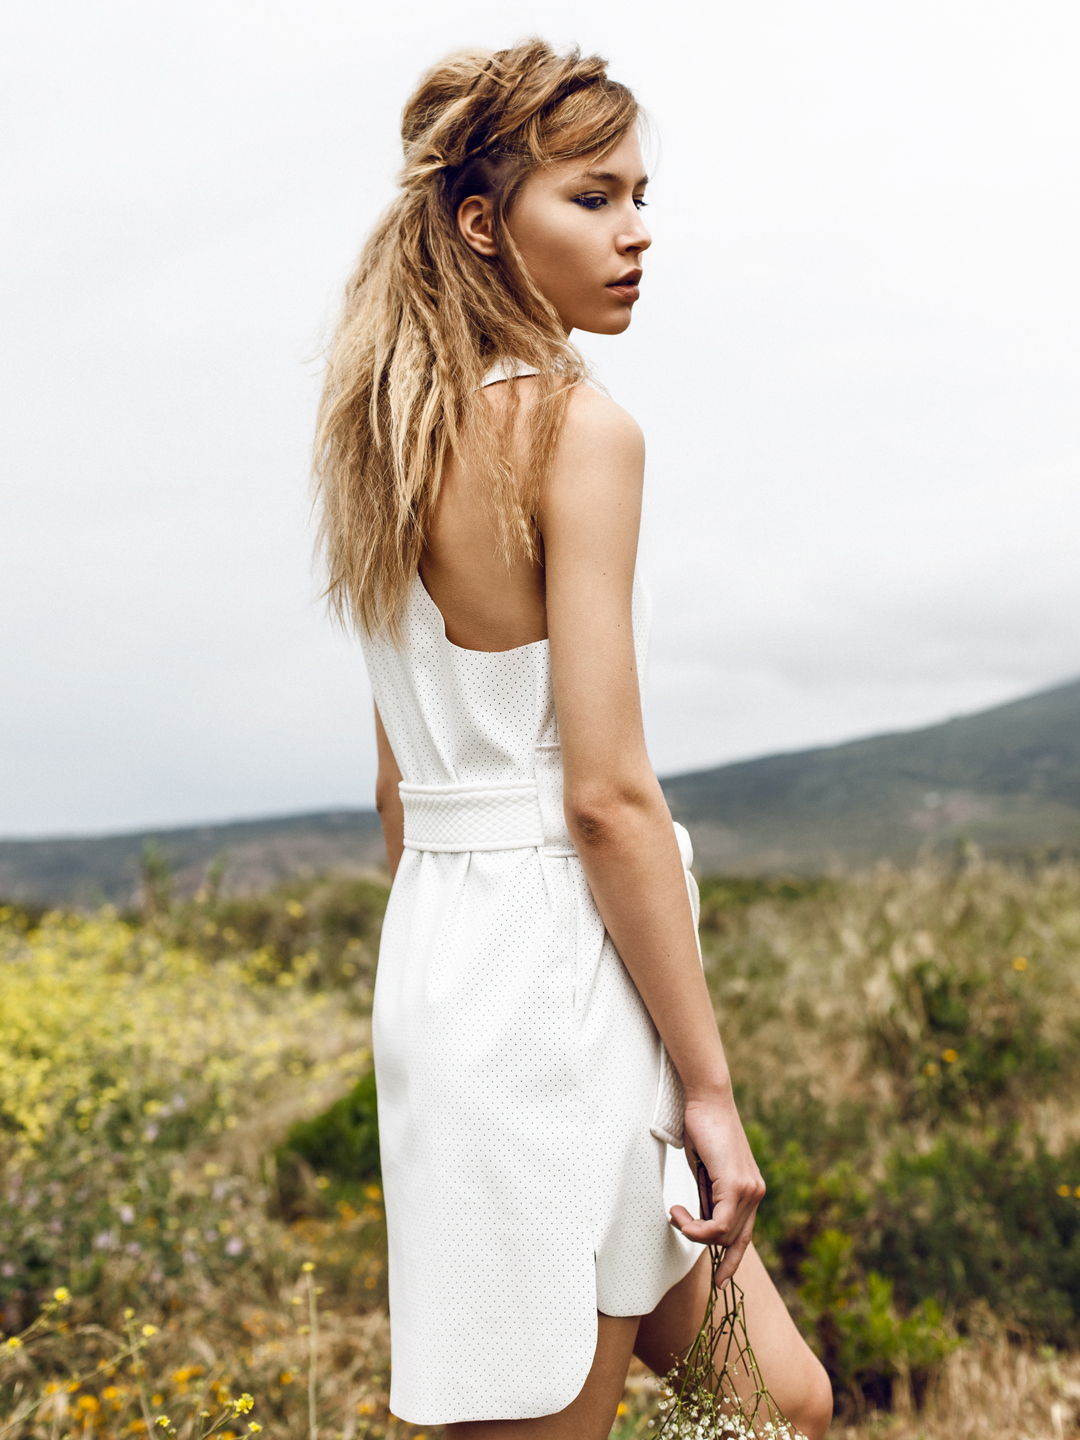 """""""White Sands"""" editorial, featuring Taru (Elite Lisbon). Styling by Rita Alves, make up by Cris, hair by Pini Hairstyle."""